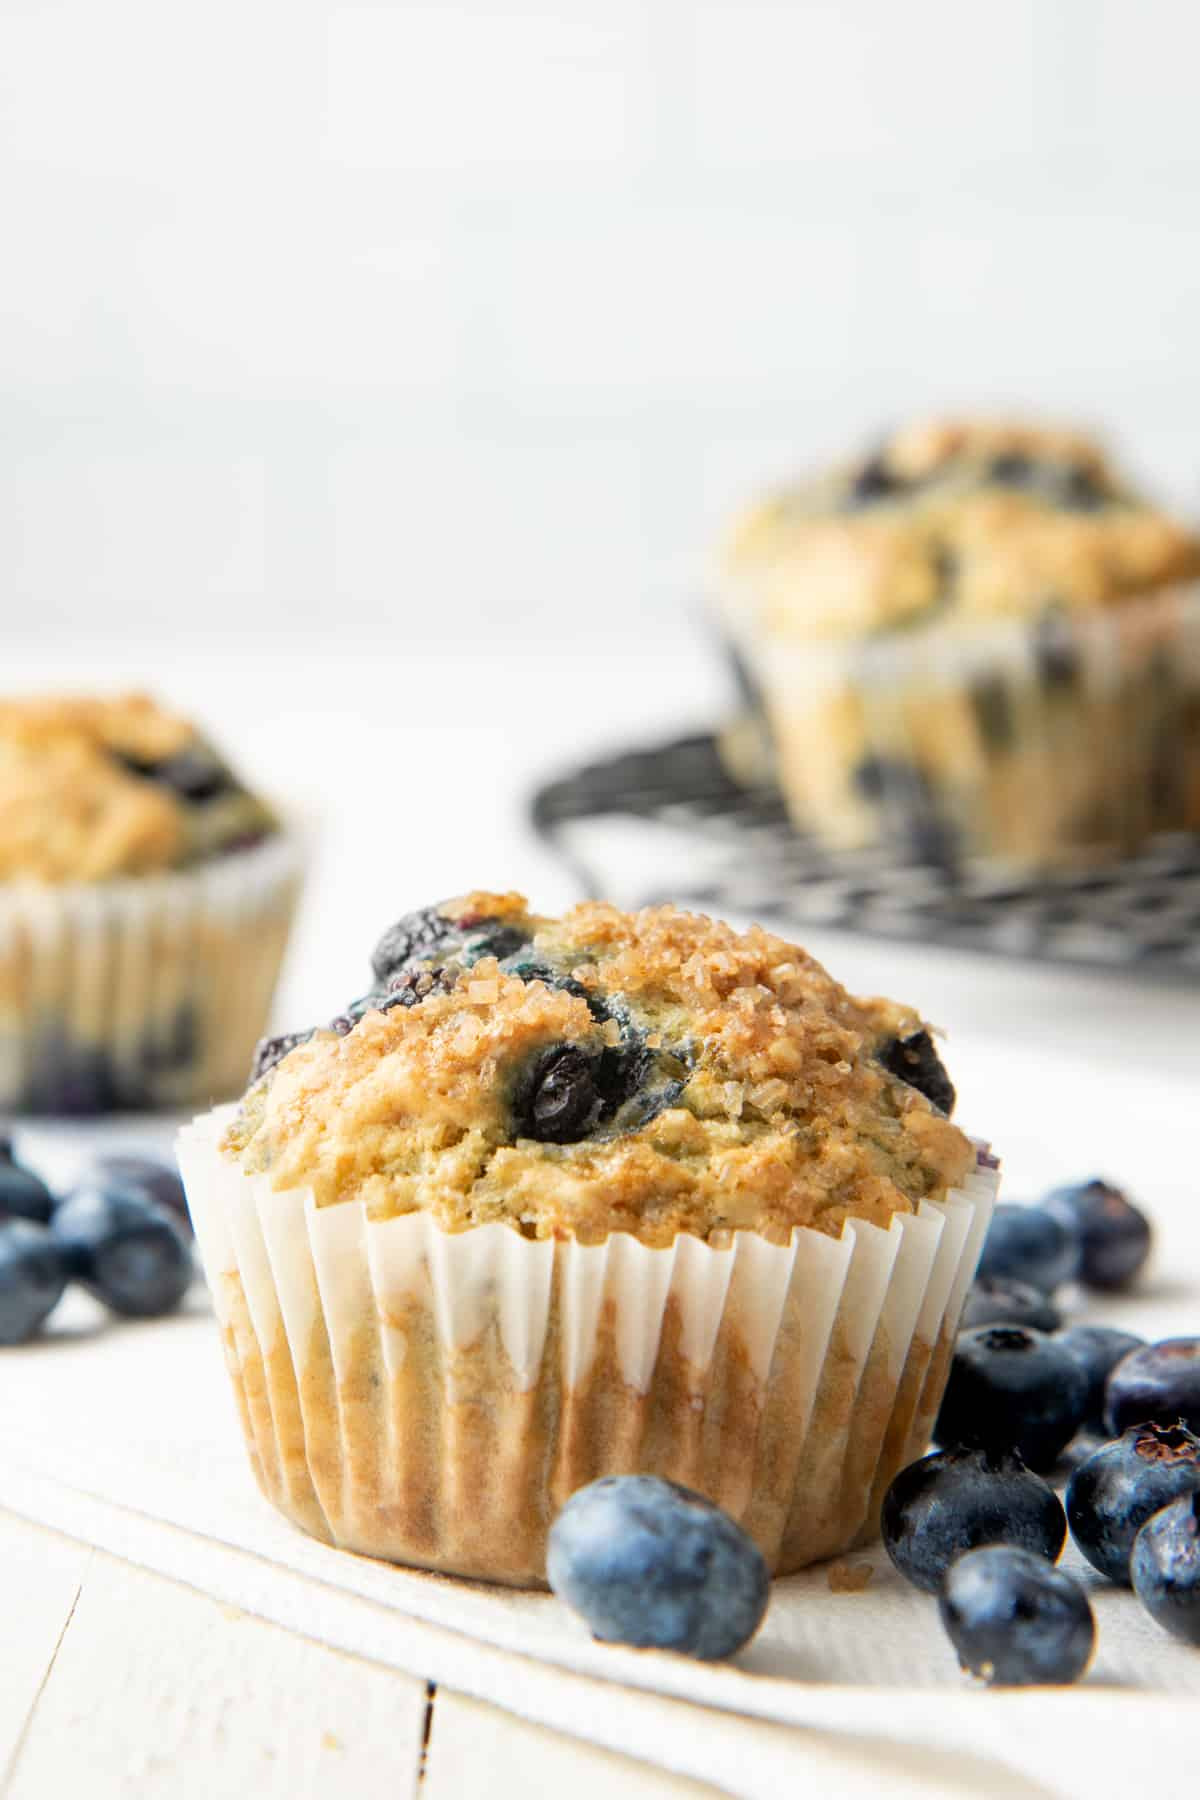 A baked Vegan Blueberry Muffin sits surrounded by fresh blueberries.